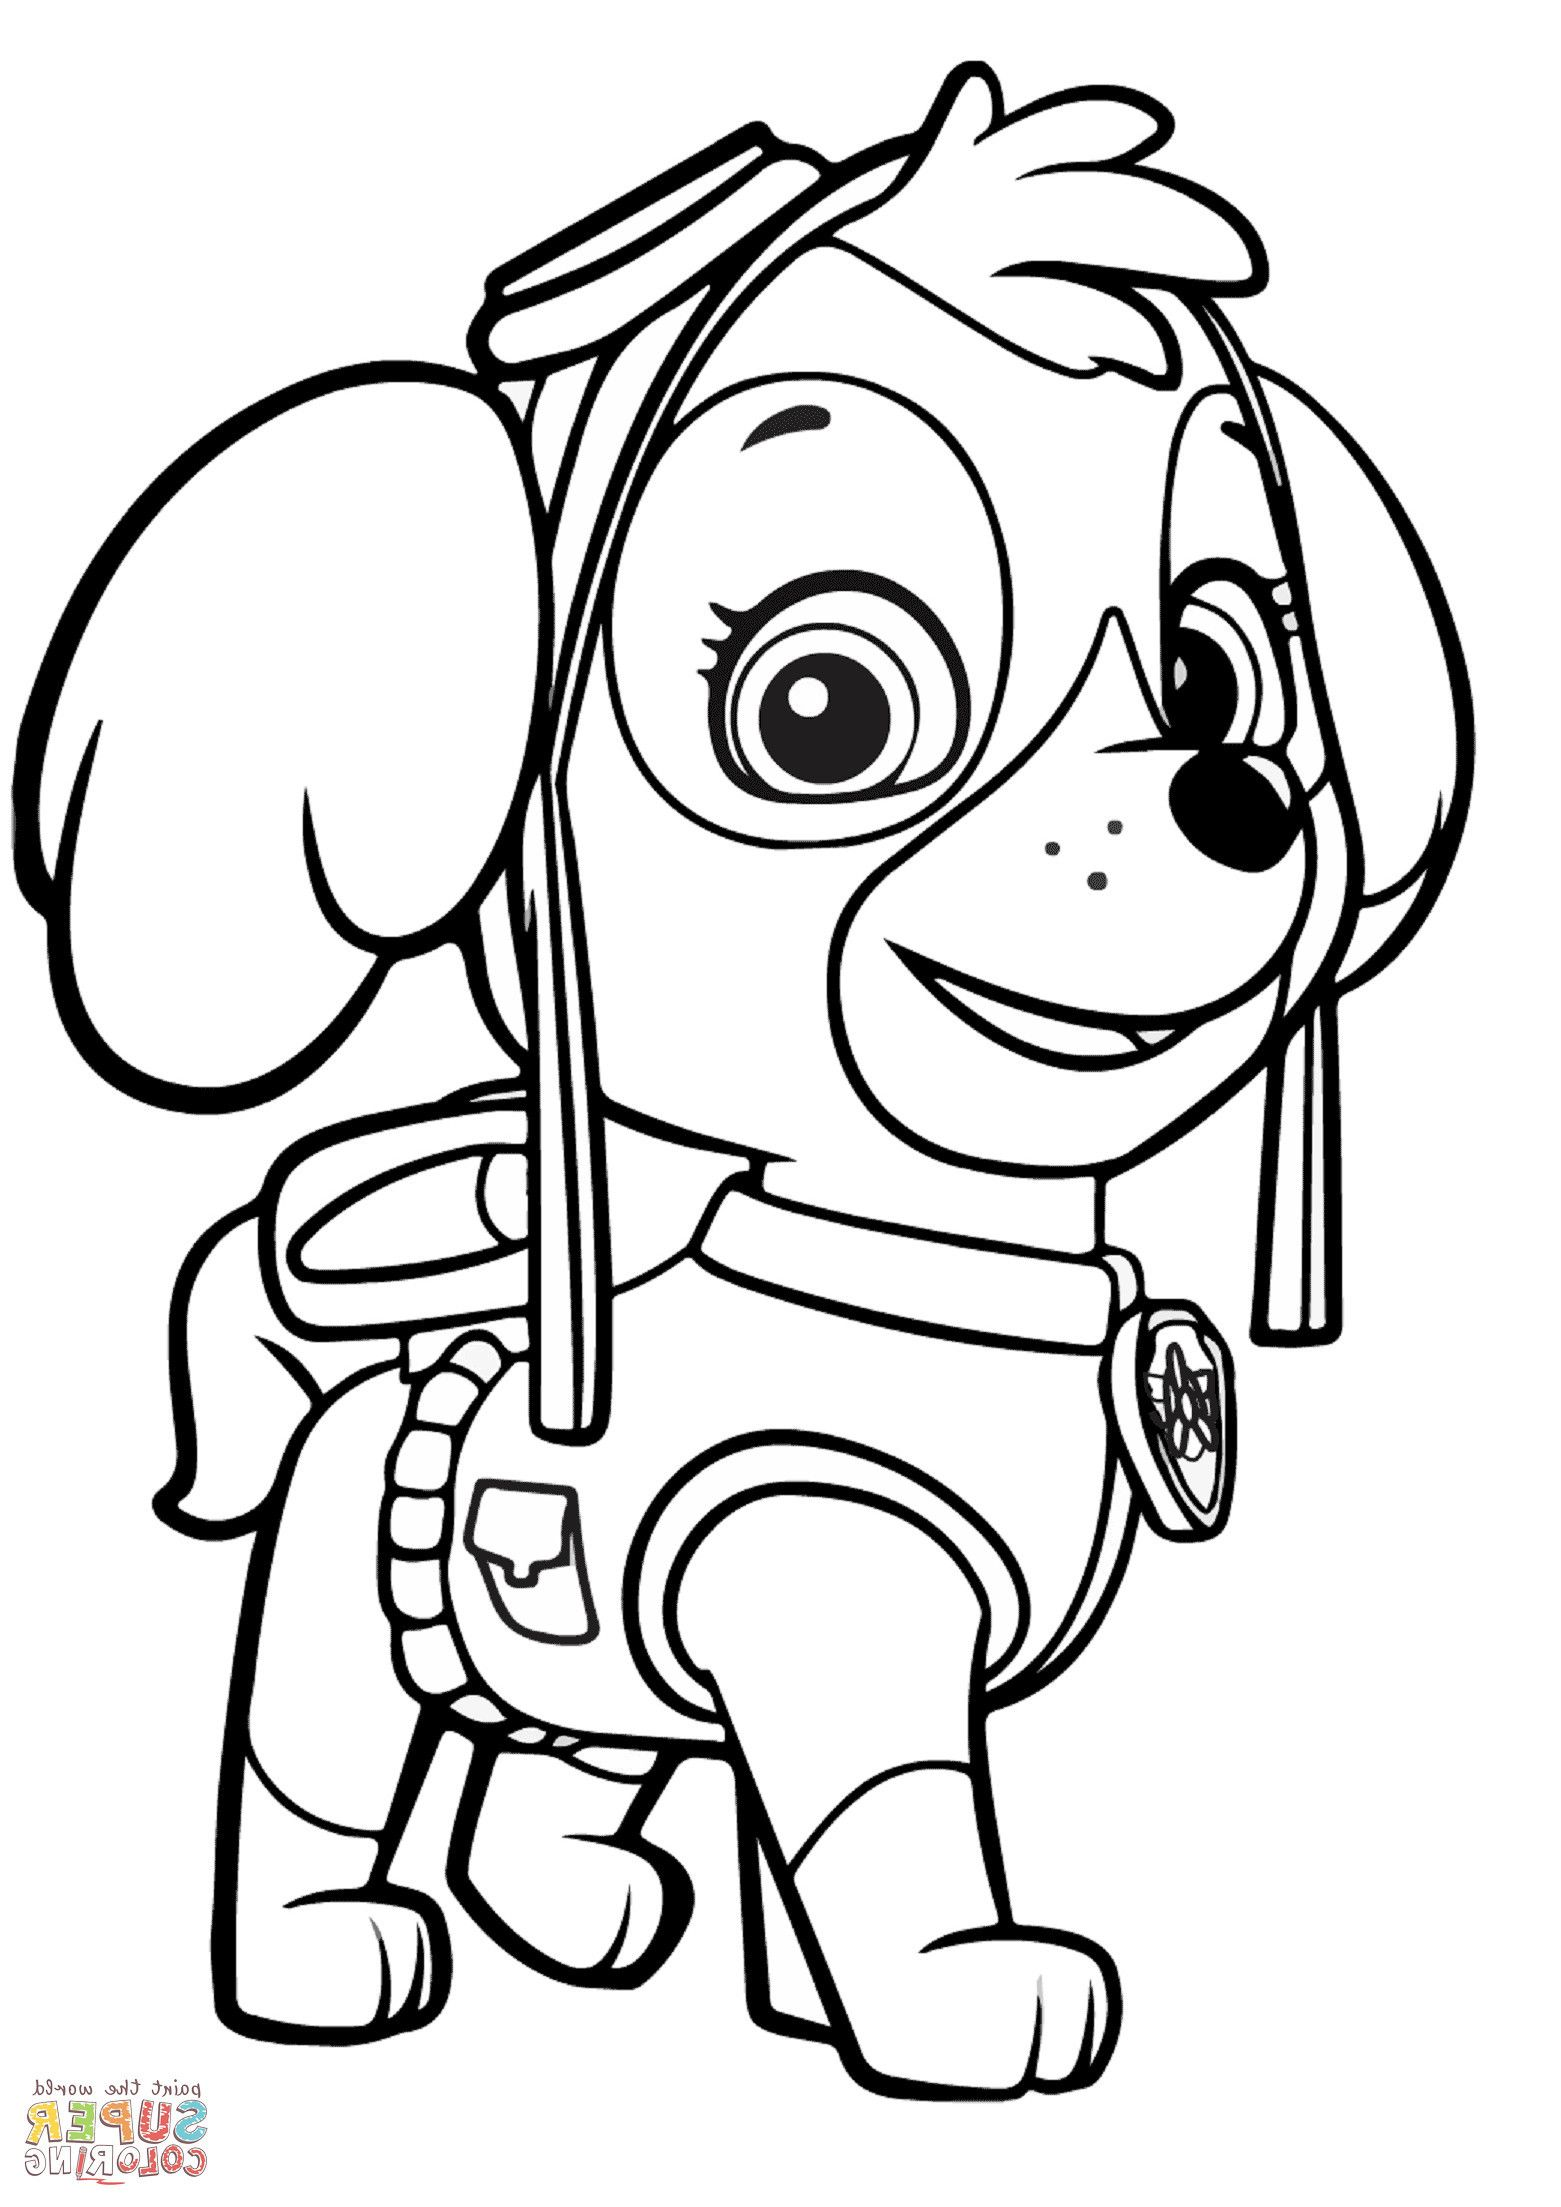 Paw Patrol Skye Coloring Page Youngandtae Com Paw Patrol Coloring Pages Paw Patrol Coloring Nick Jr Coloring Pages